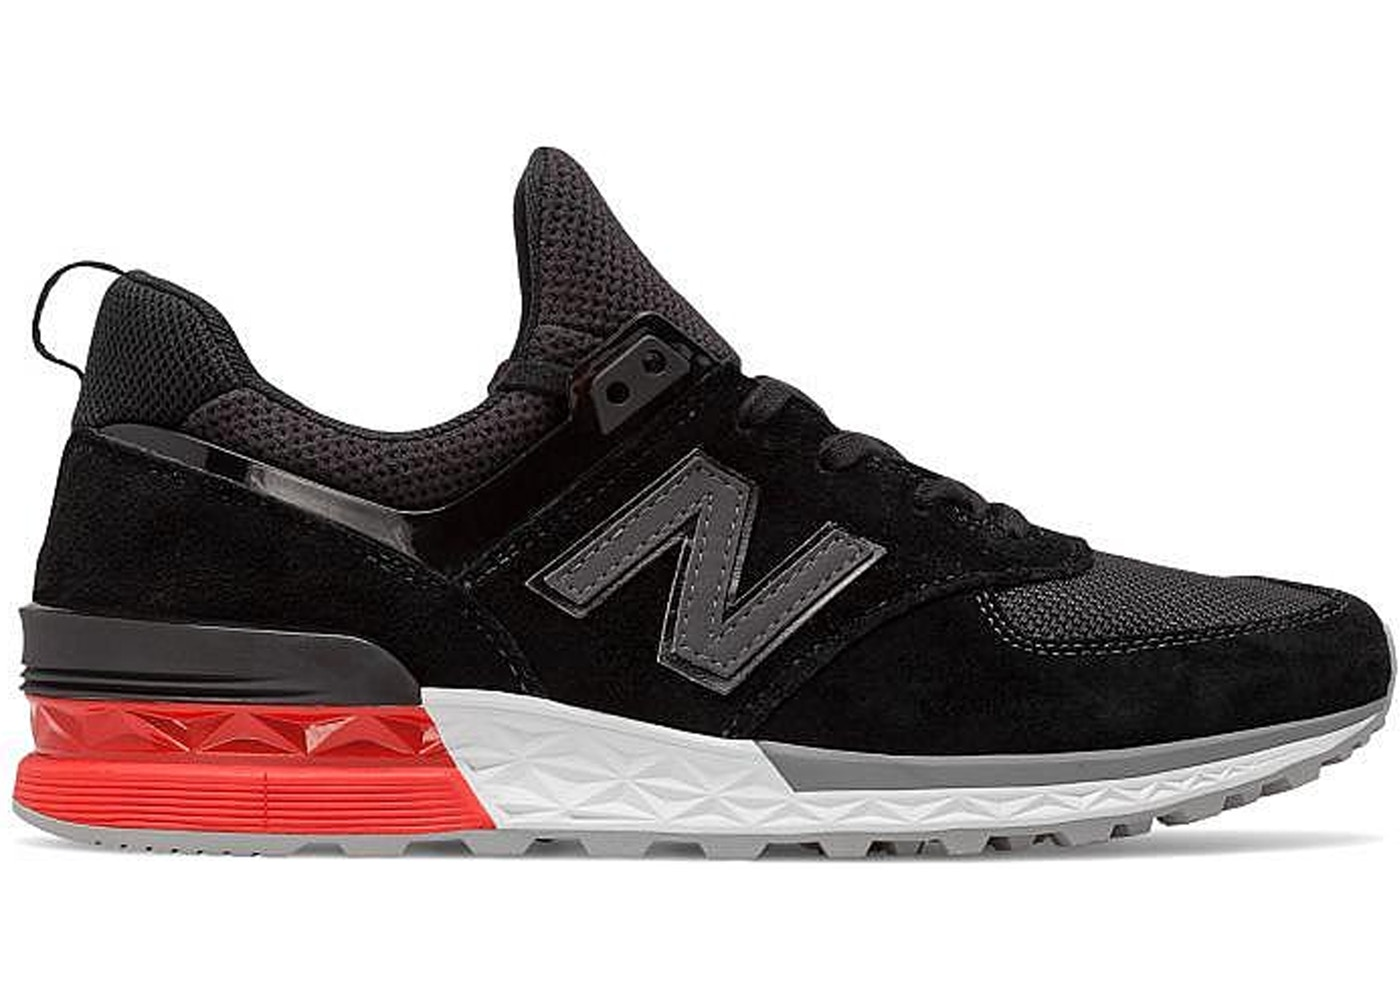 manual Biblioteca troncal Ocultación  New Balance 574 Sport Black Red - MS574AB